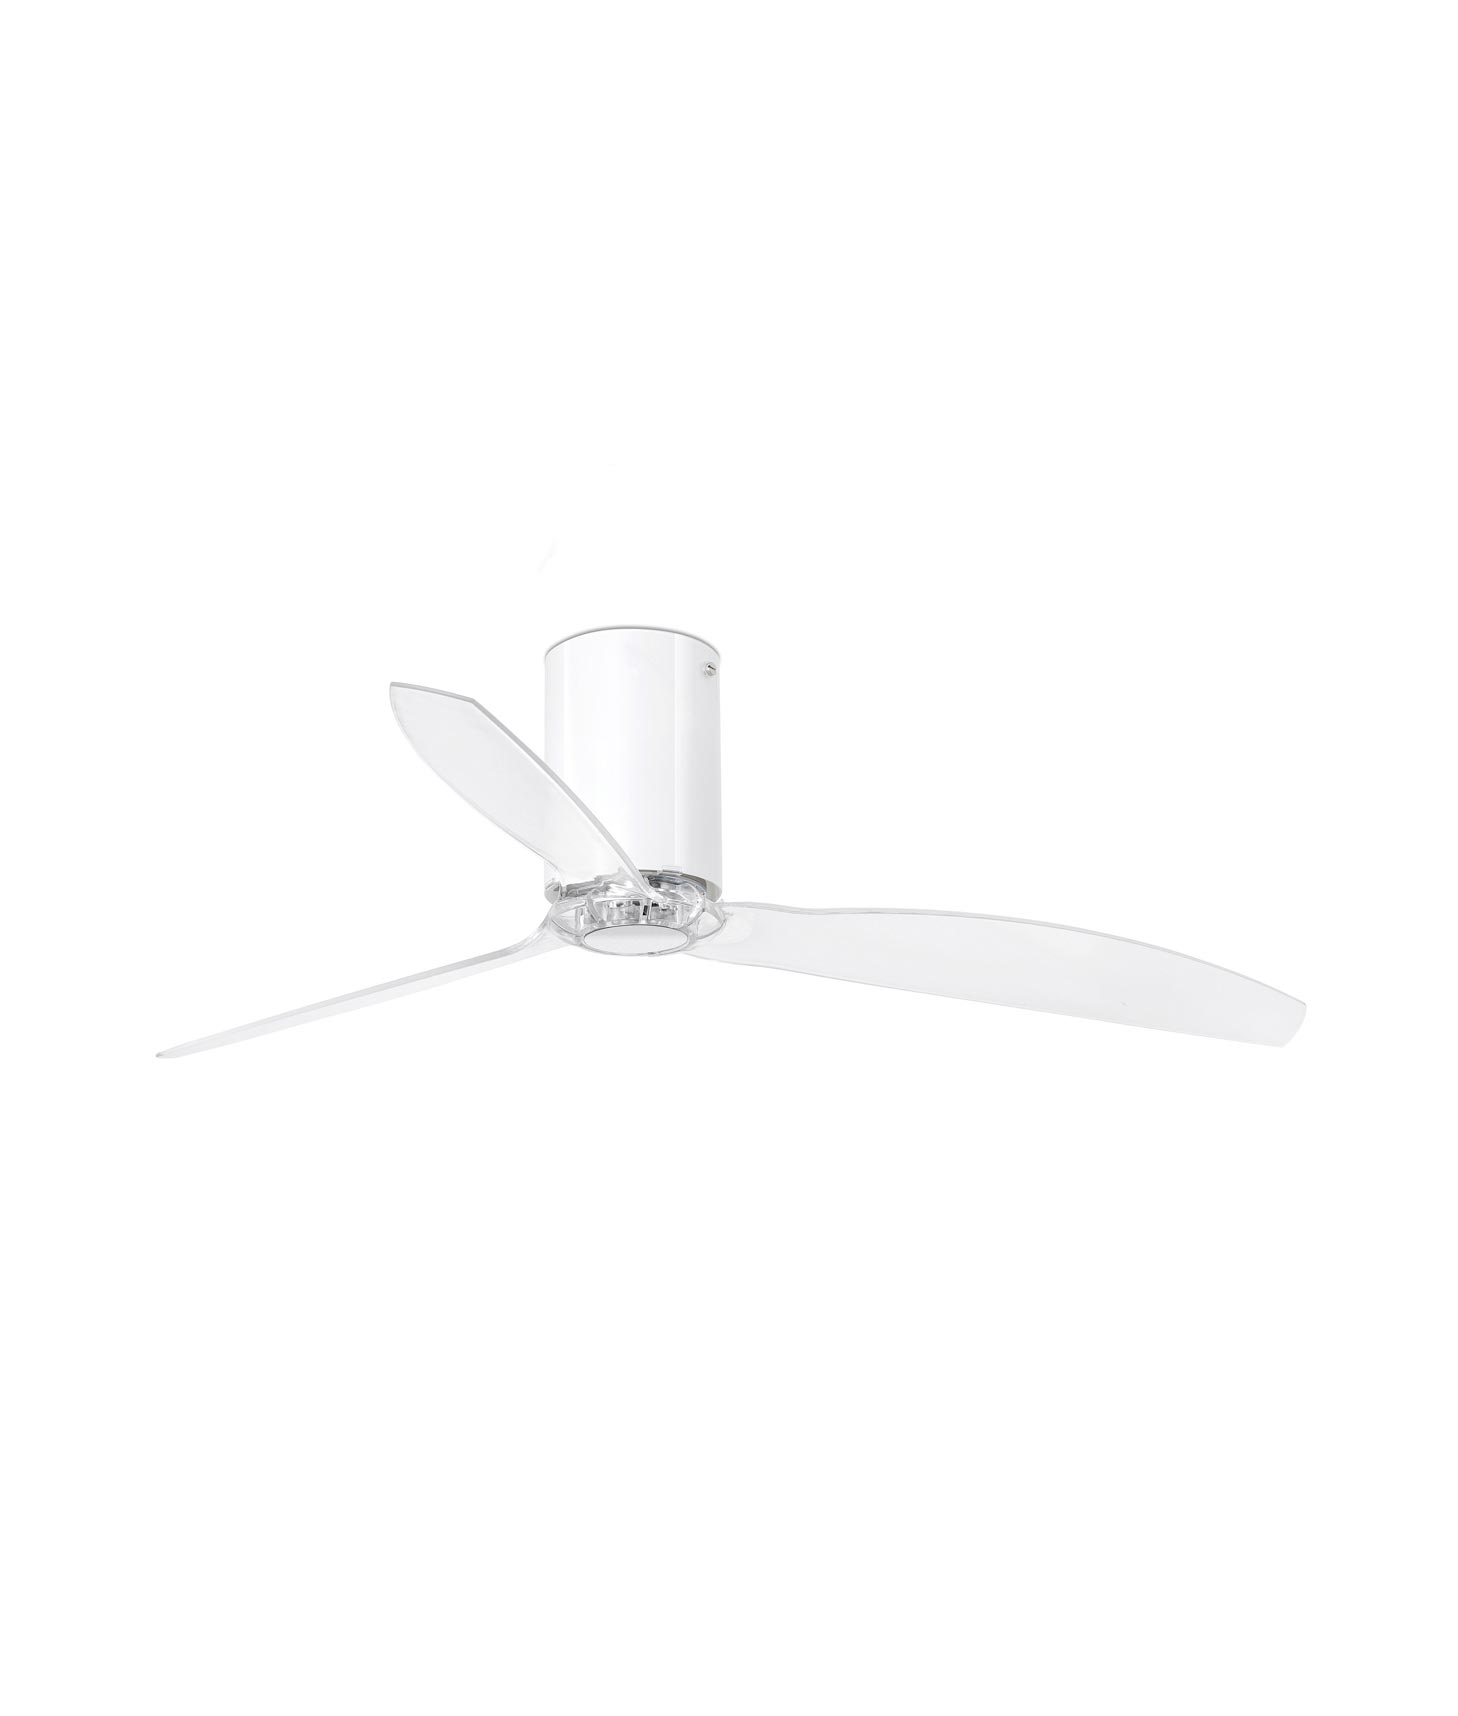 Ventilador blanco brillo y transparente MINI TUBE FAN